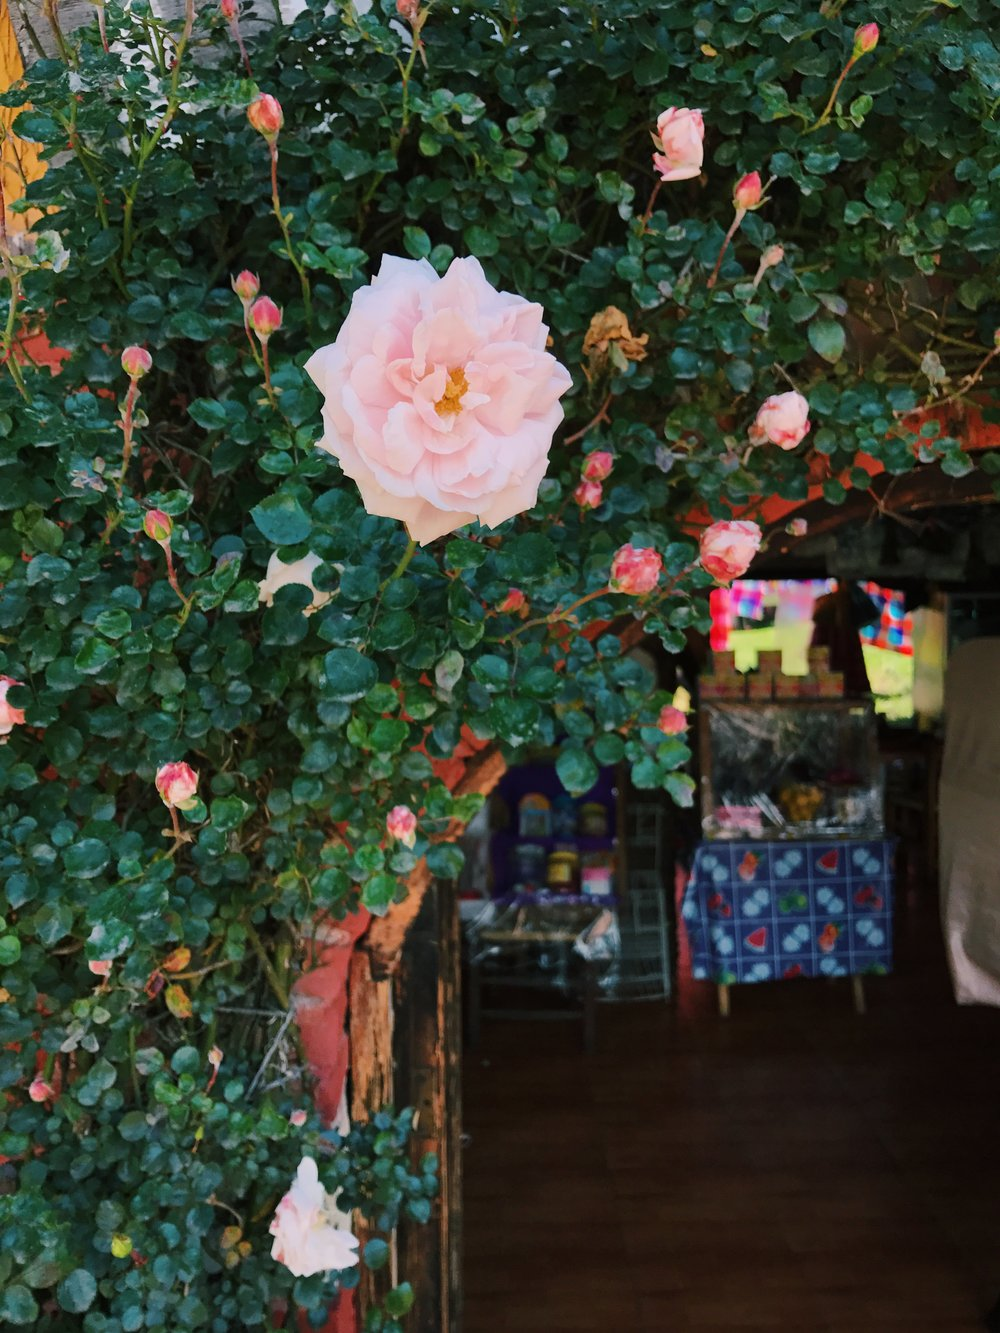 A gorgeous rose bush taking over the entry arch to a house/restaurant.